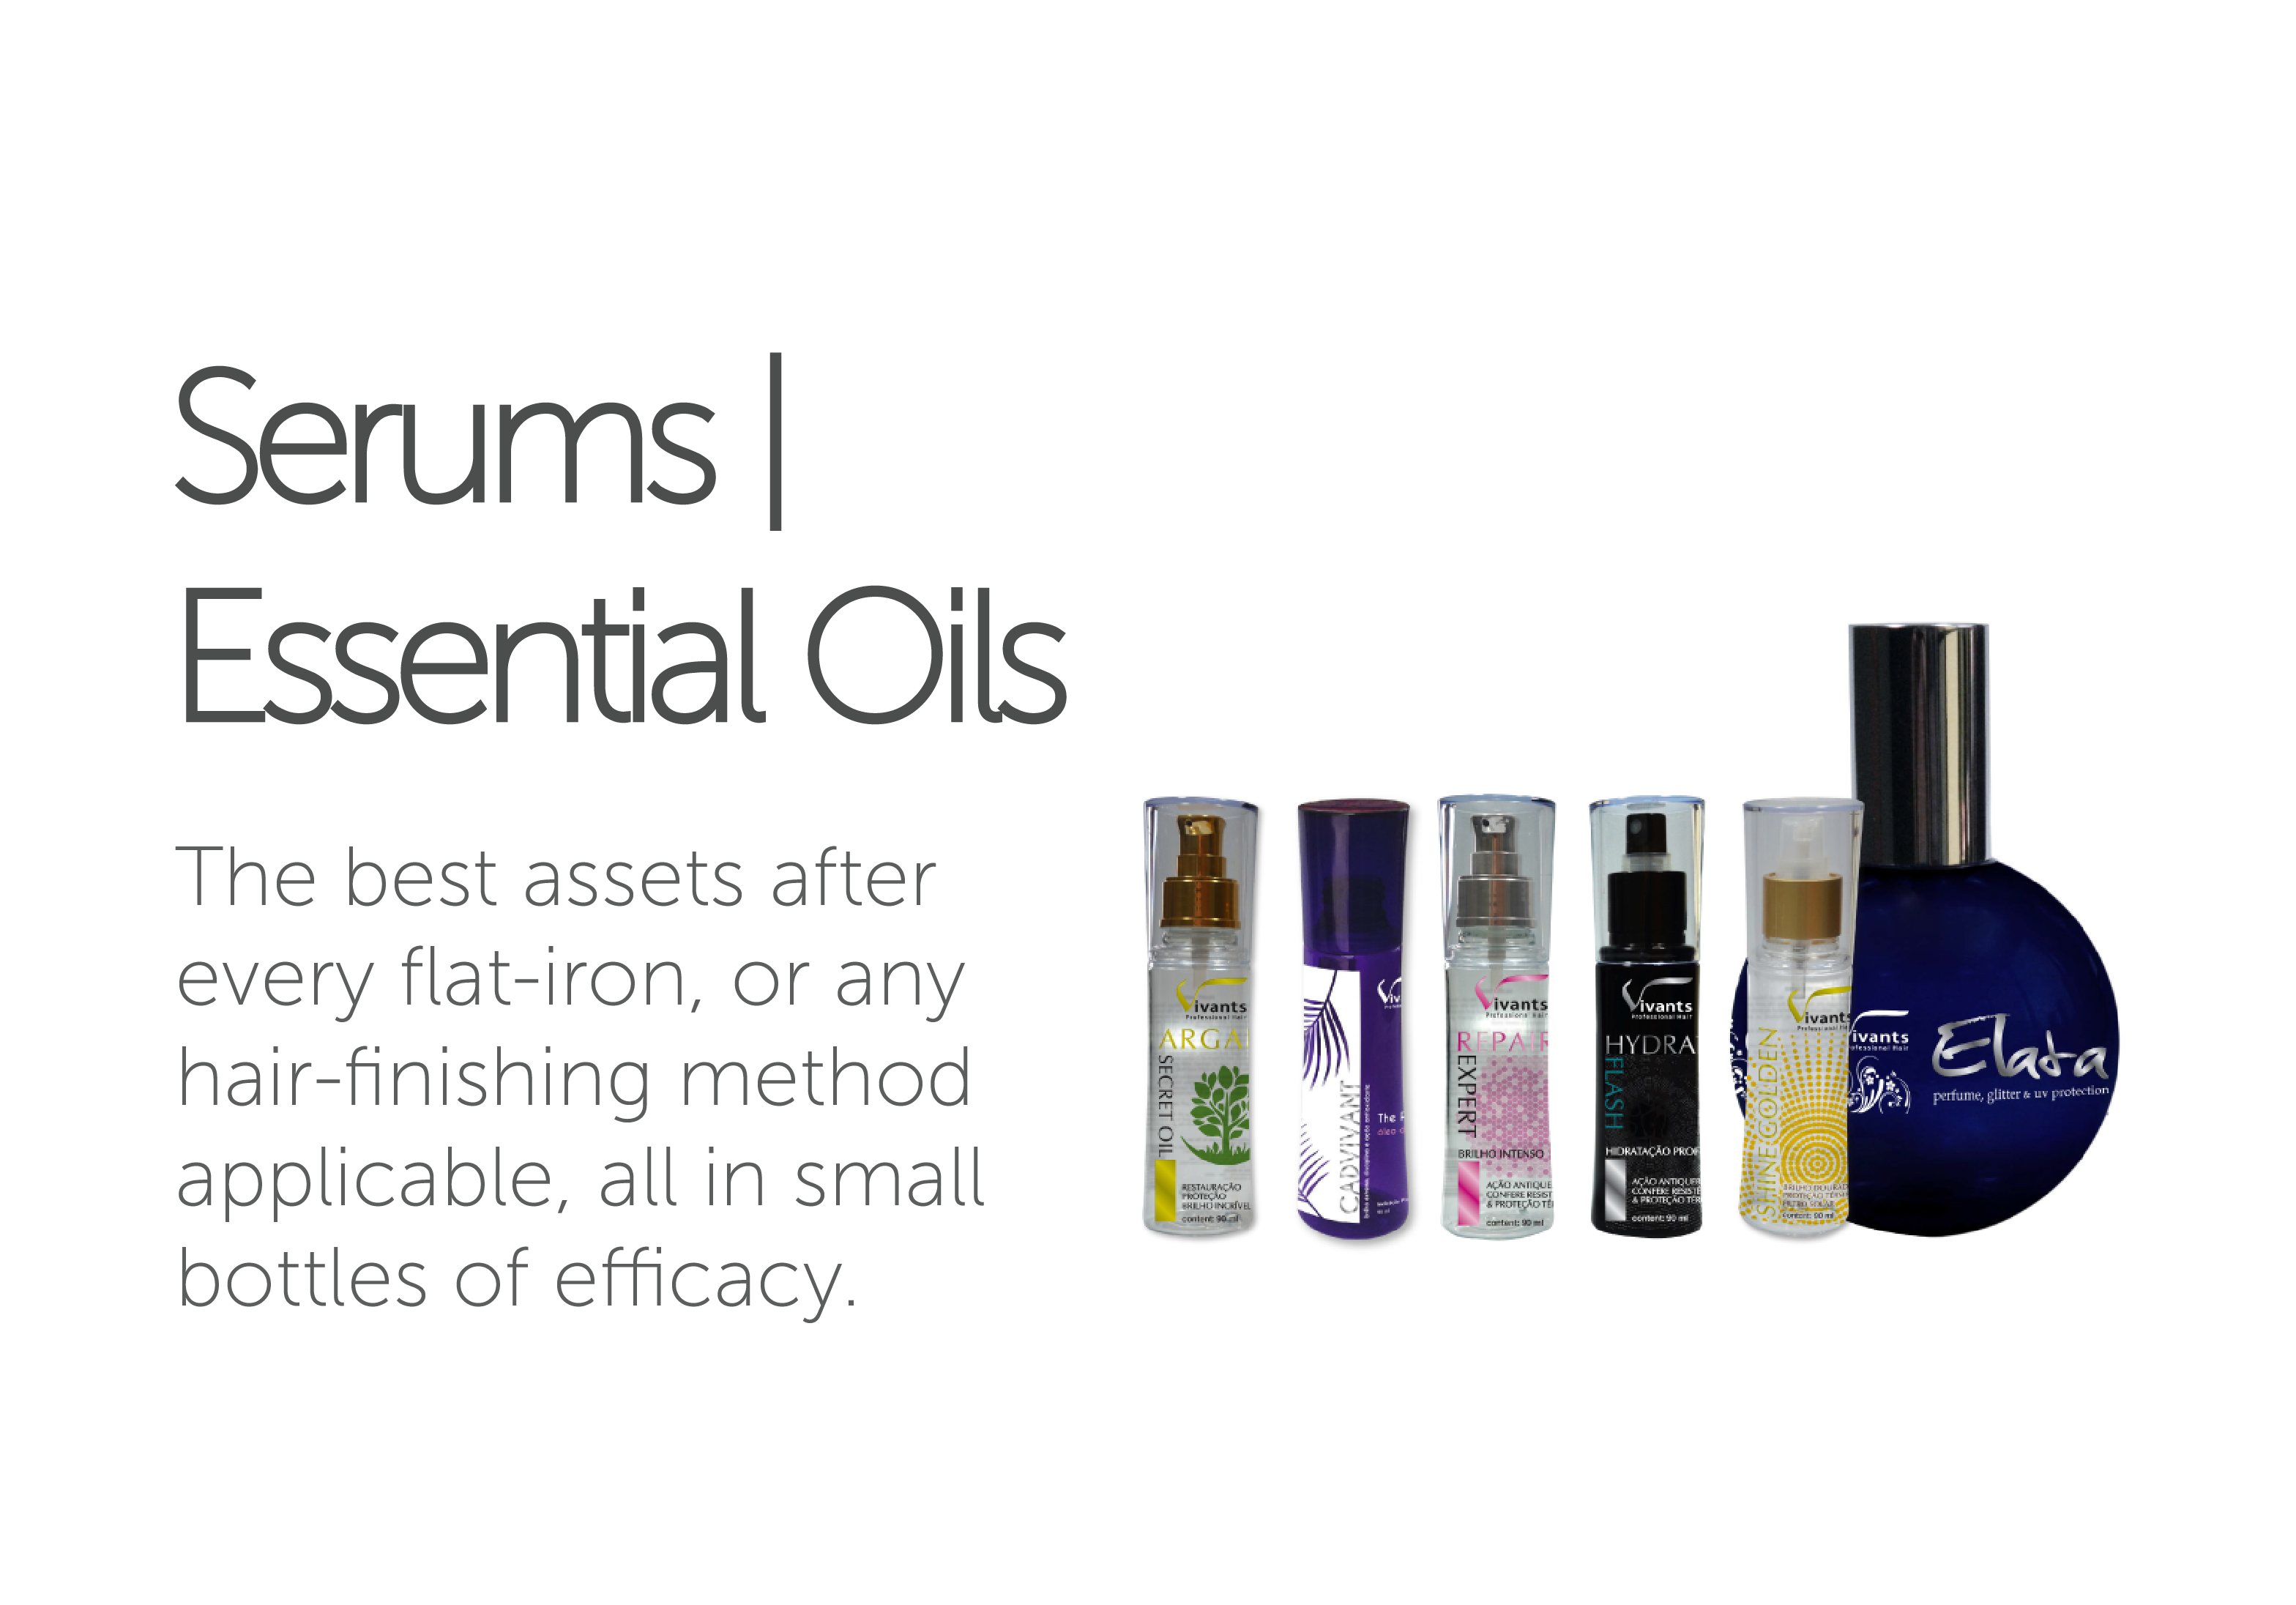 Serums | Essential Oils Vivants Professional Hair's line of Serums and Essential Oils.